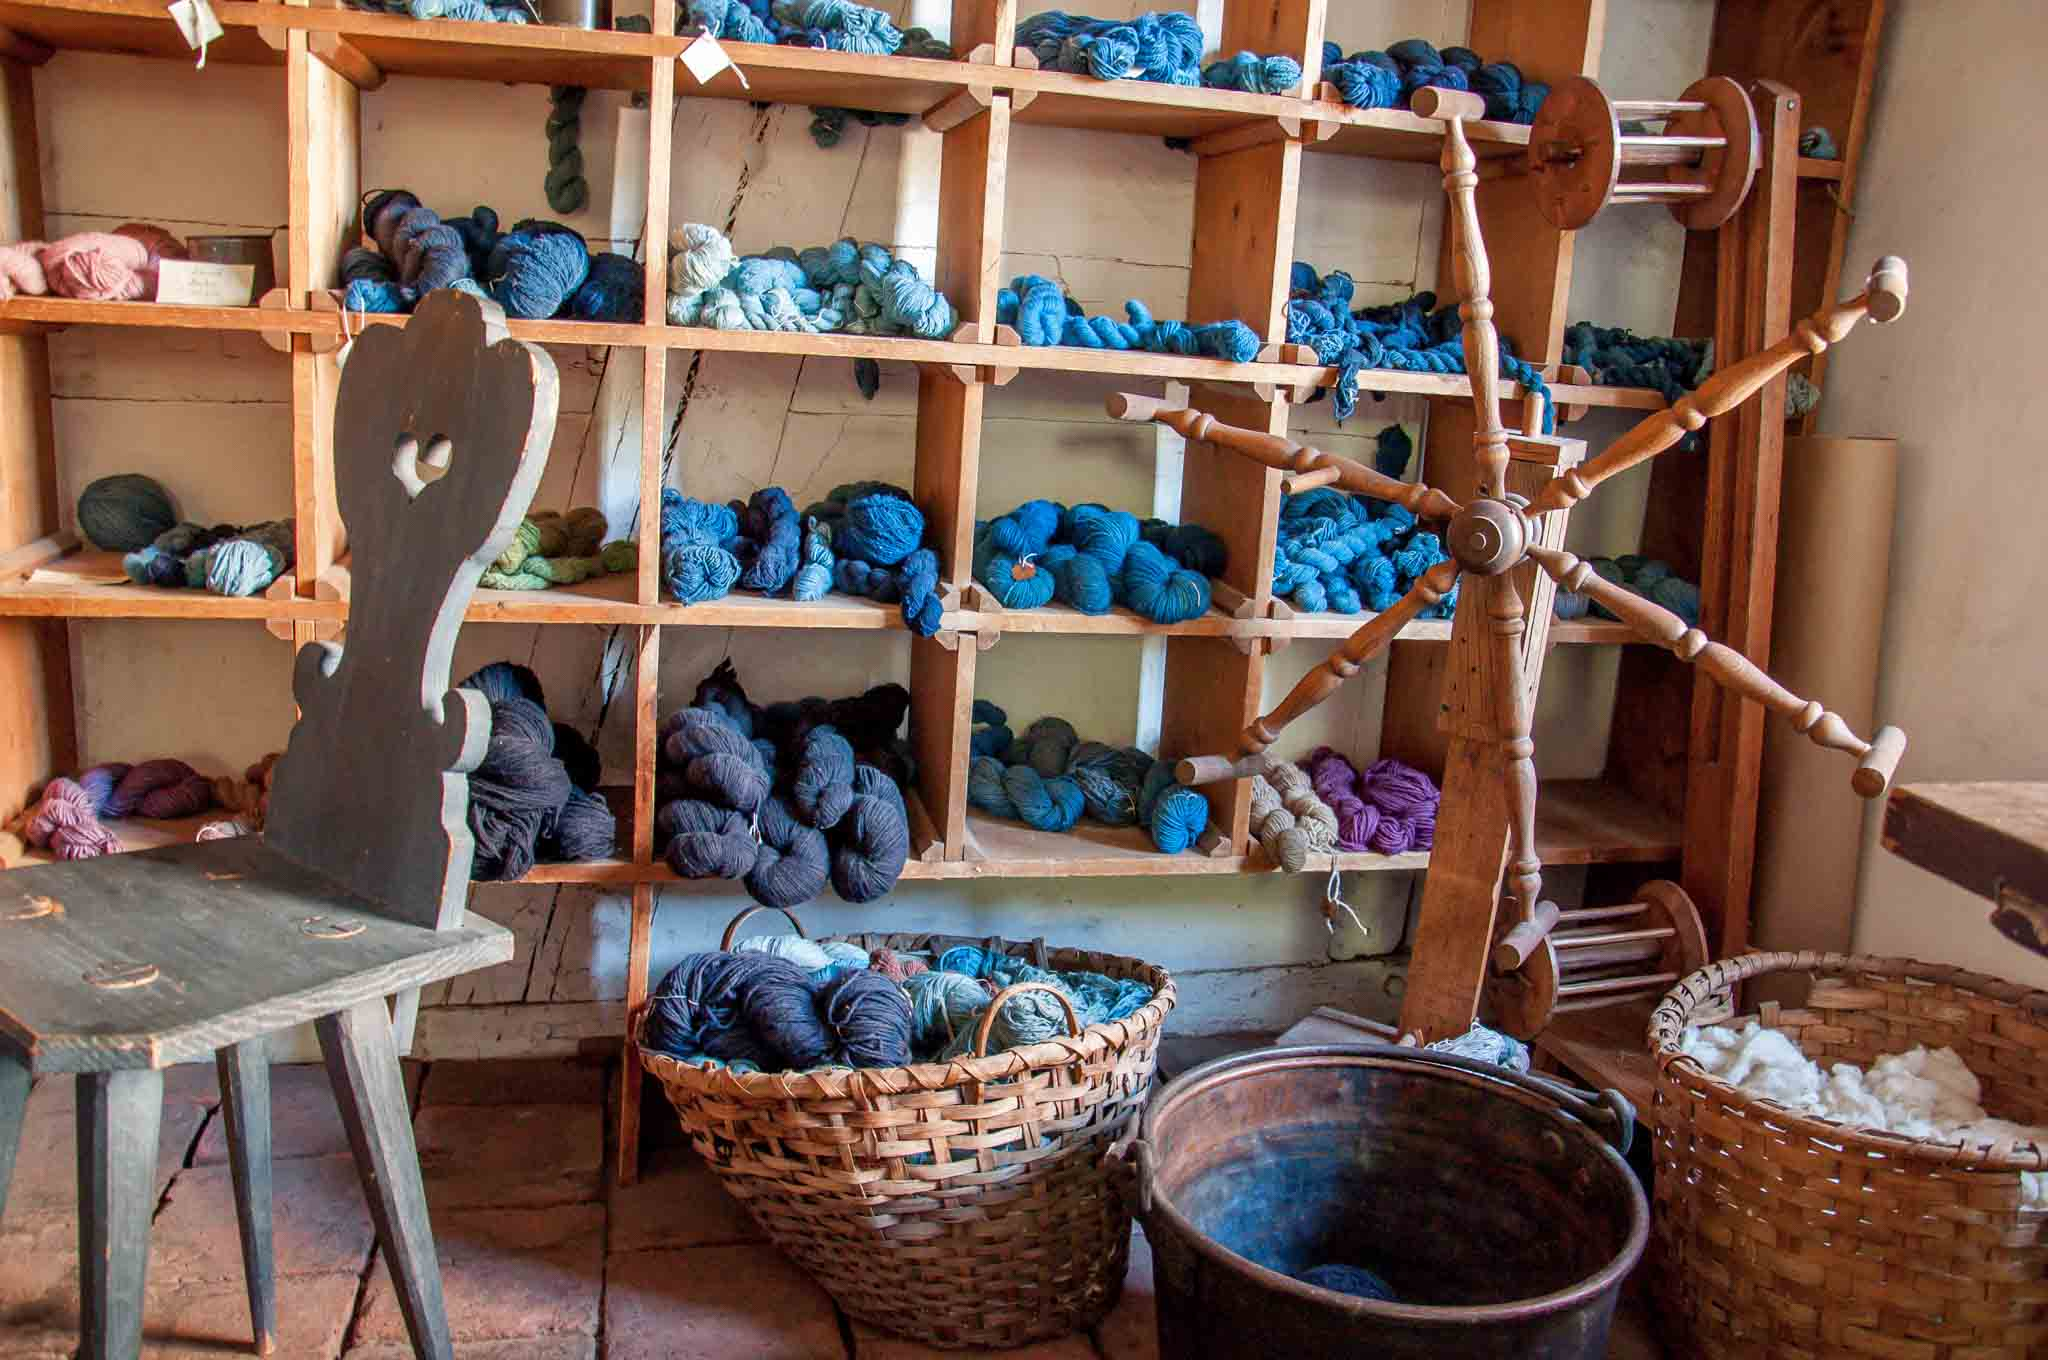 Colorful yarn skeins and spinning wheel